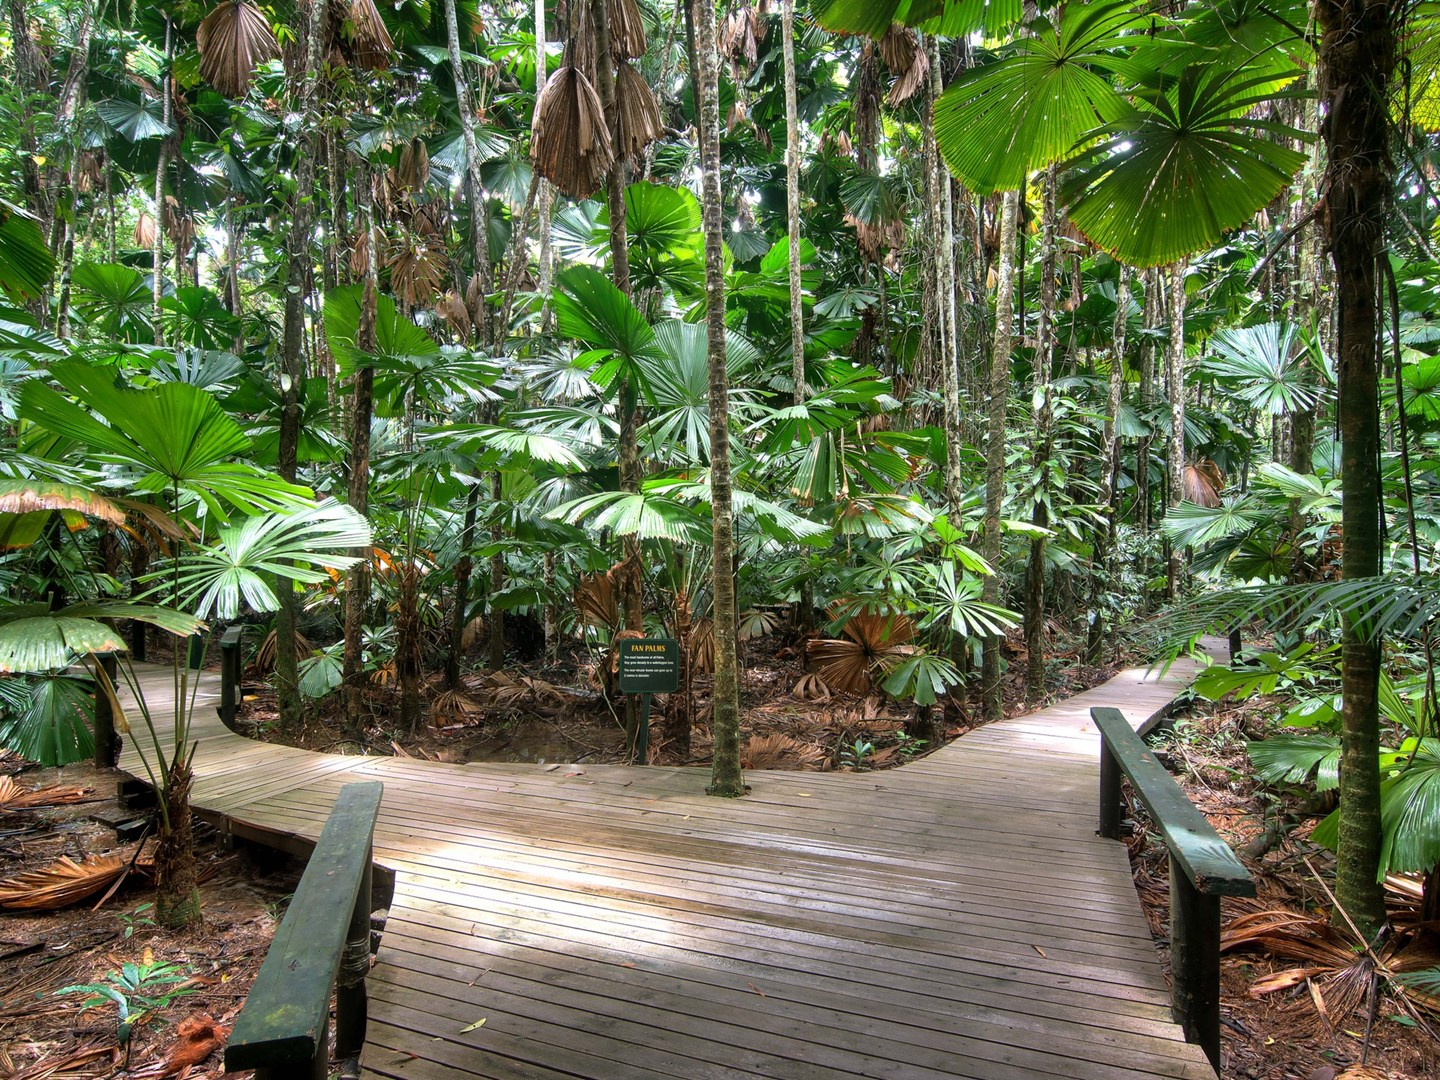 1882 cape tribulation road diwan daintree qld 4873 for Diwan queensland